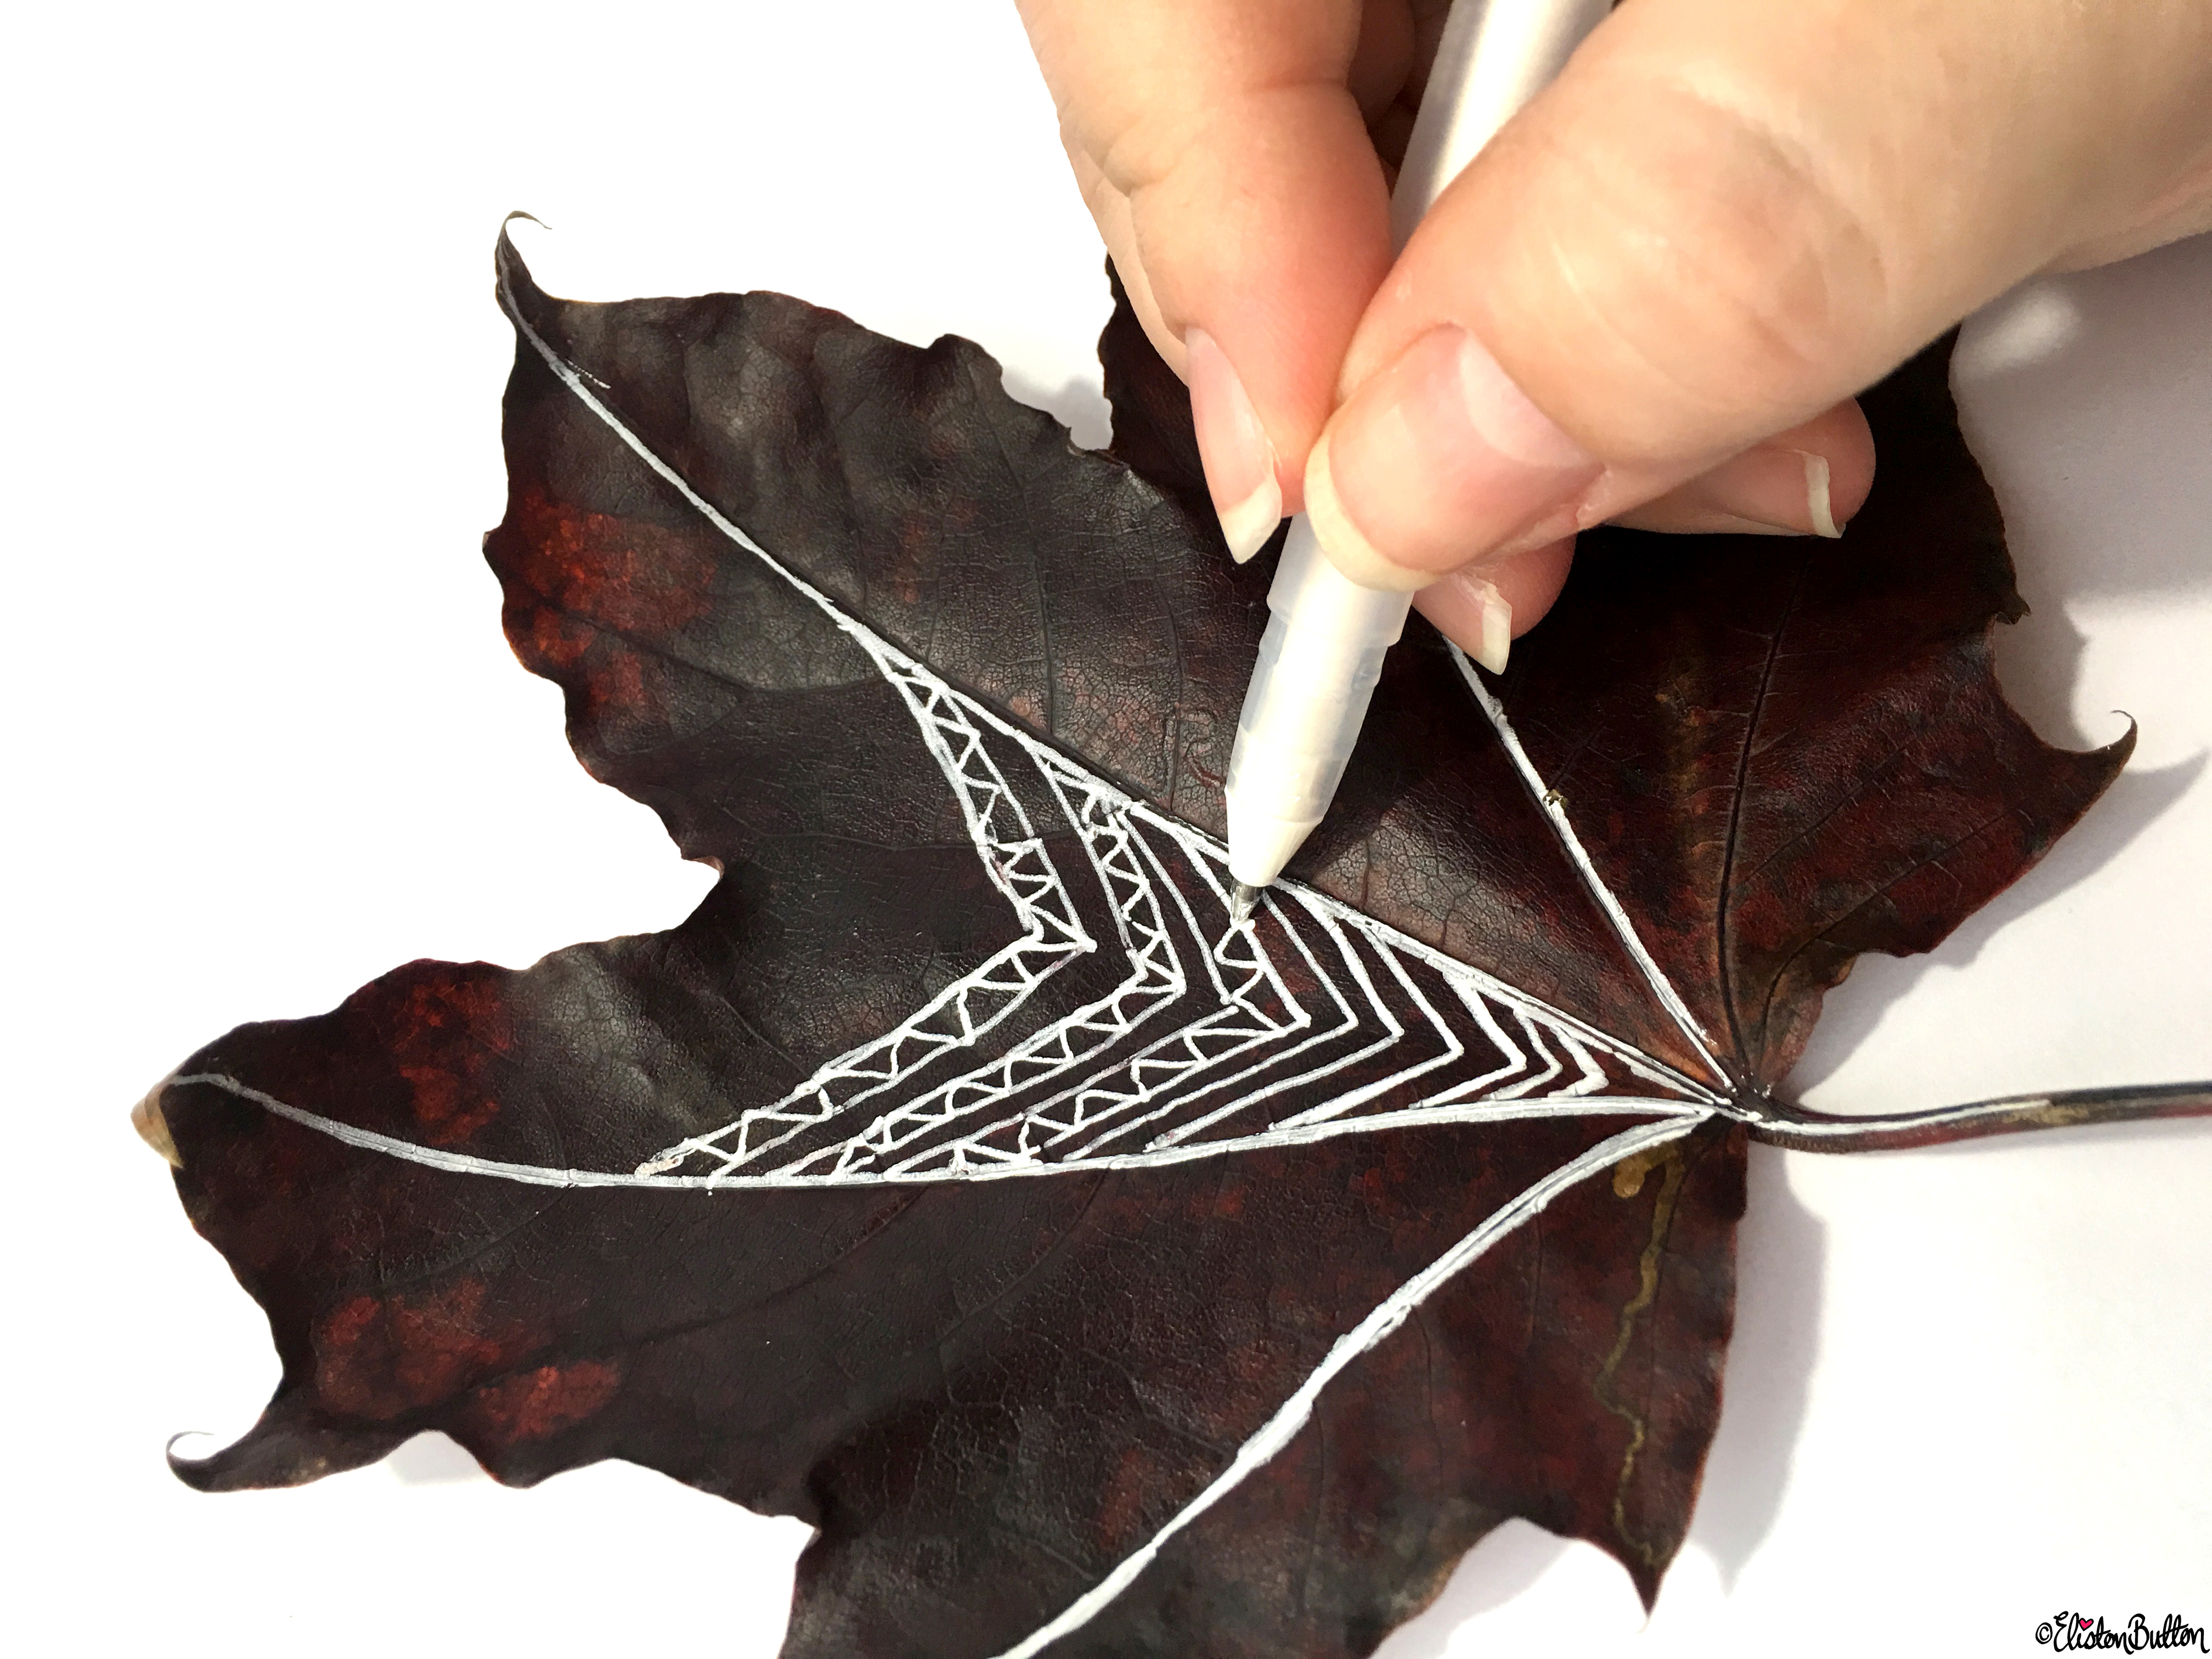 Drawing on Autumn Leaves with White Ink - Workspace Wednesday - Autumn Leaf Art at www.elistonbutton.com - Eliston Button - That Crafty Kid – Art, Design, Craft & Adventure.